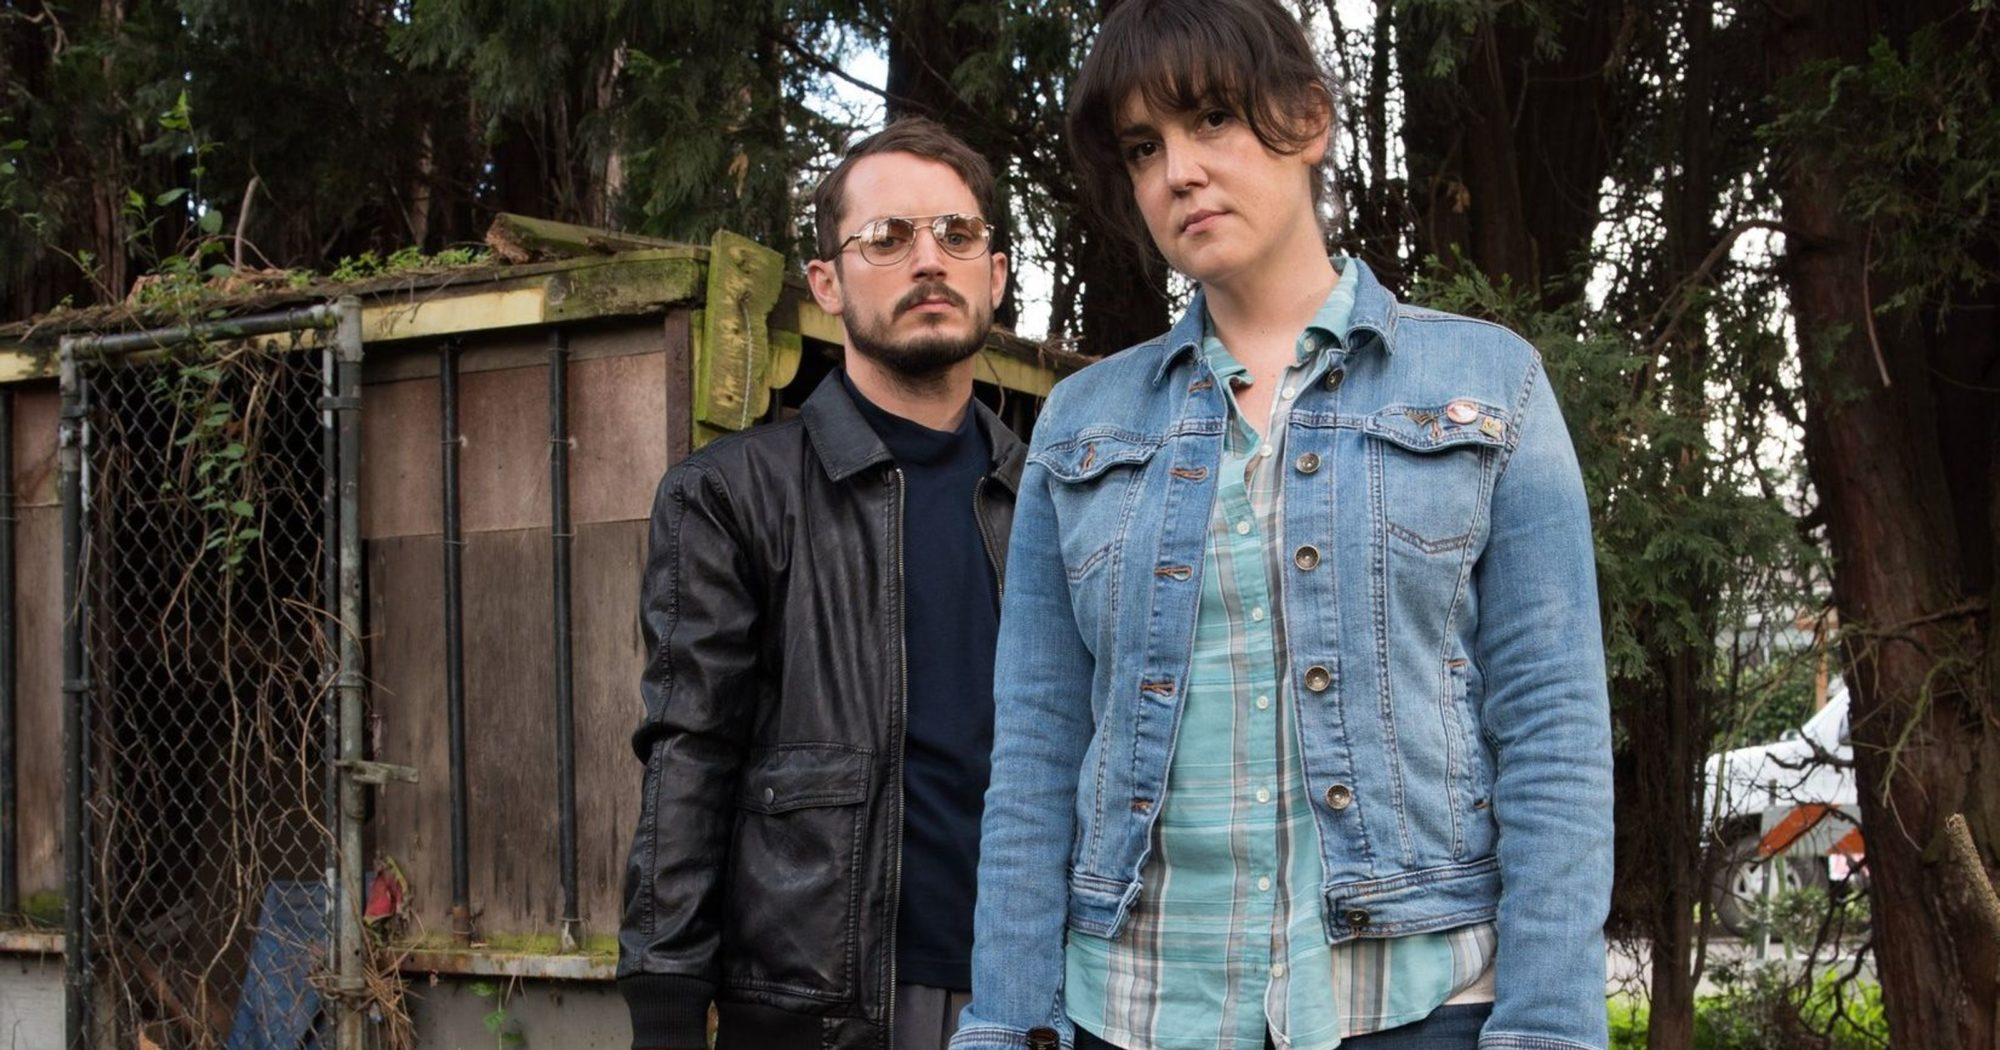 Best Movies on Netflix  I Don't Feel at Home in This World Anymore Play Latest Trailer Watch all you want for free. I Don't Feel at Home in This World Anymore